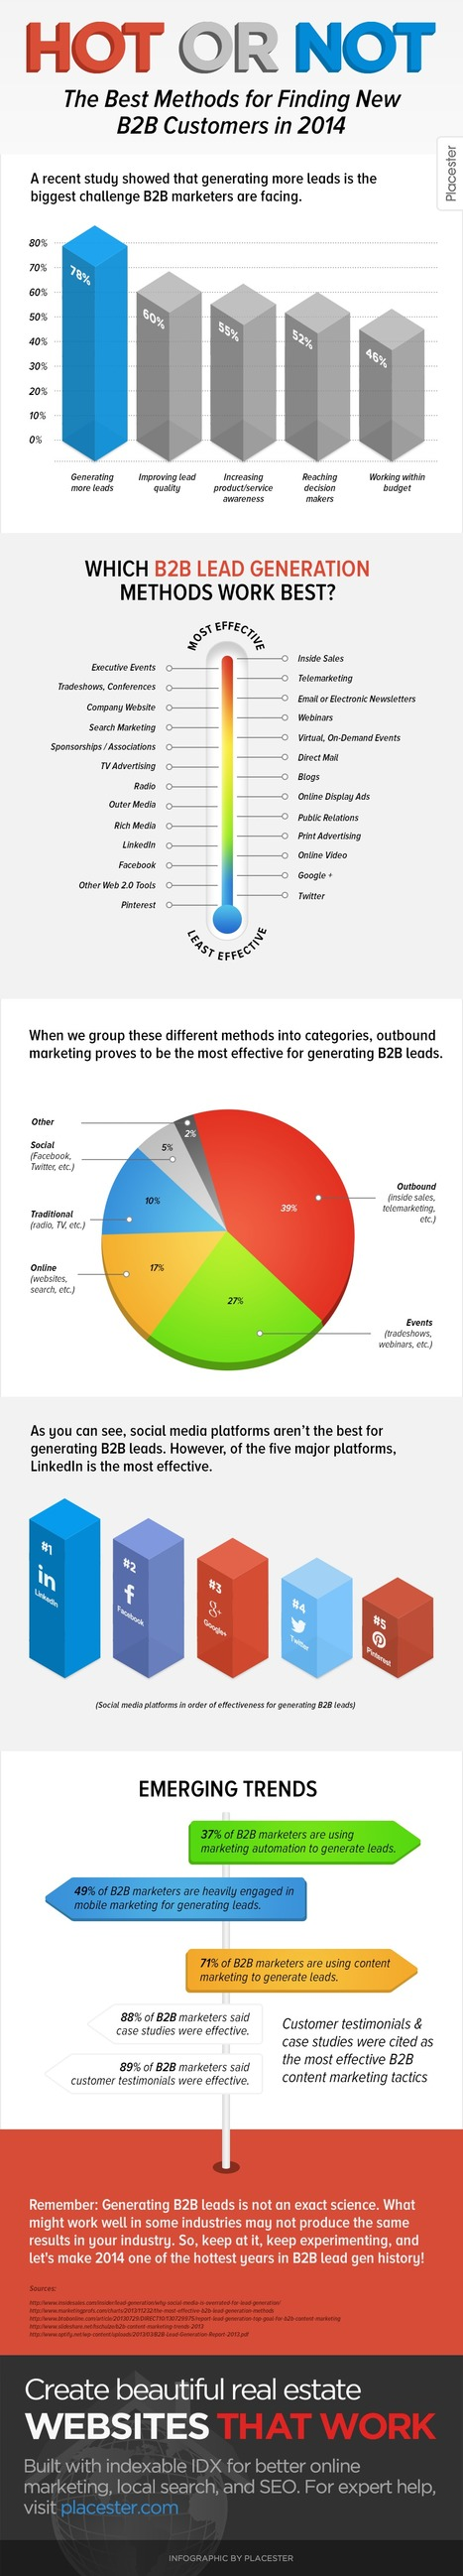 How To Find B2B Leads In 2014 (Hint: Probably Not On Twitter And Facebook) | Social Media and Internet Marketing | Scoop.it